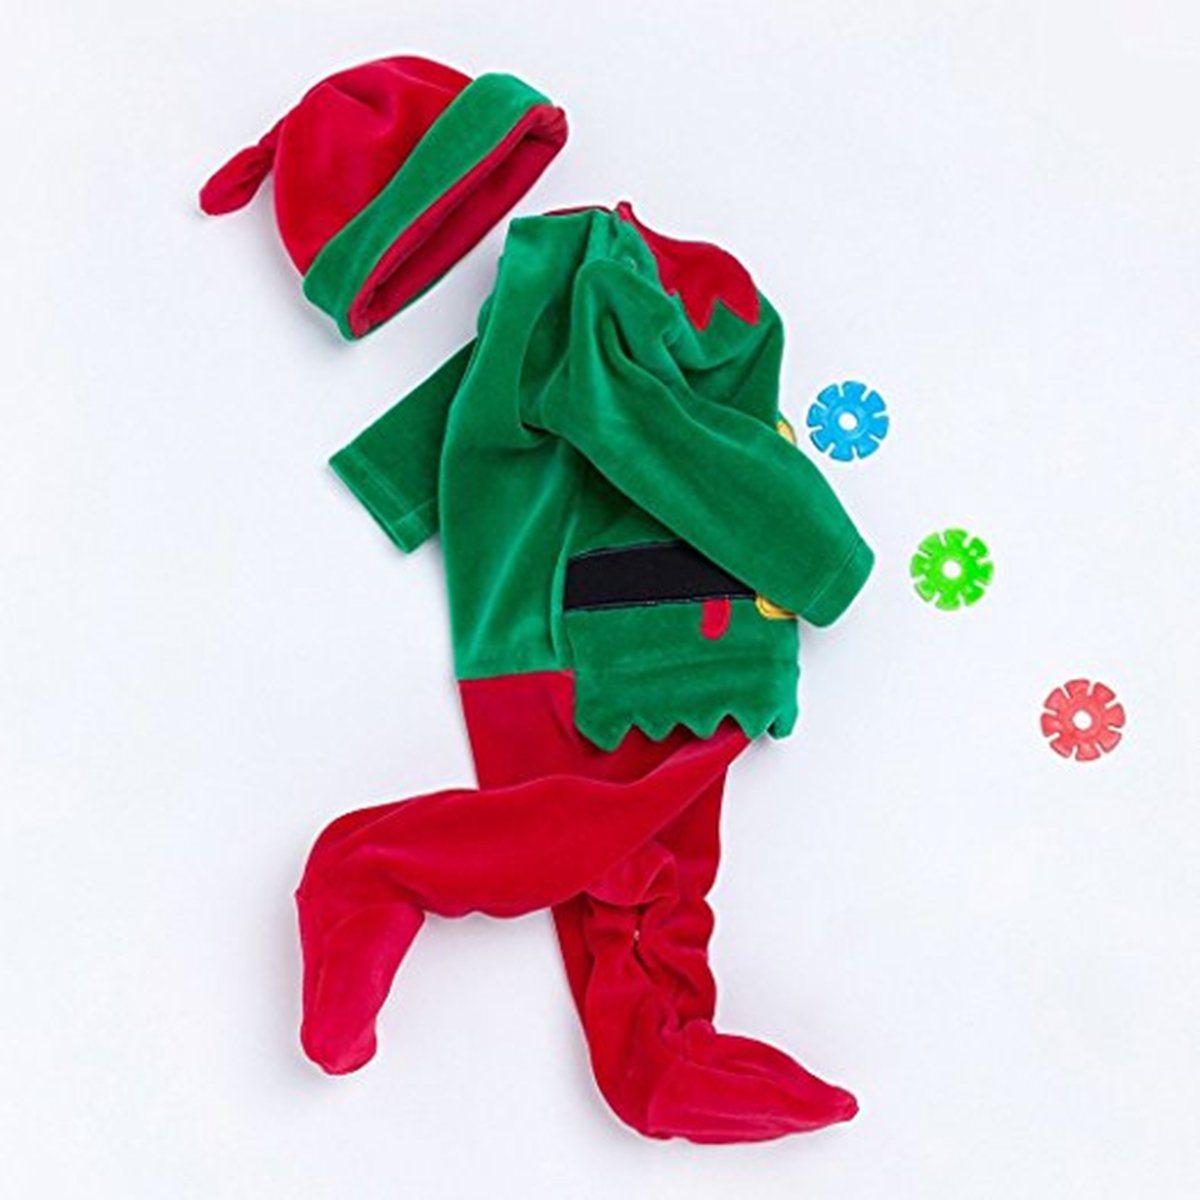 Baby Girls Or Boys Cotton Christmas Costumes Romper And Santa Hat Origami Dinosaurs Diagrams Embroidery Clothing Accessories